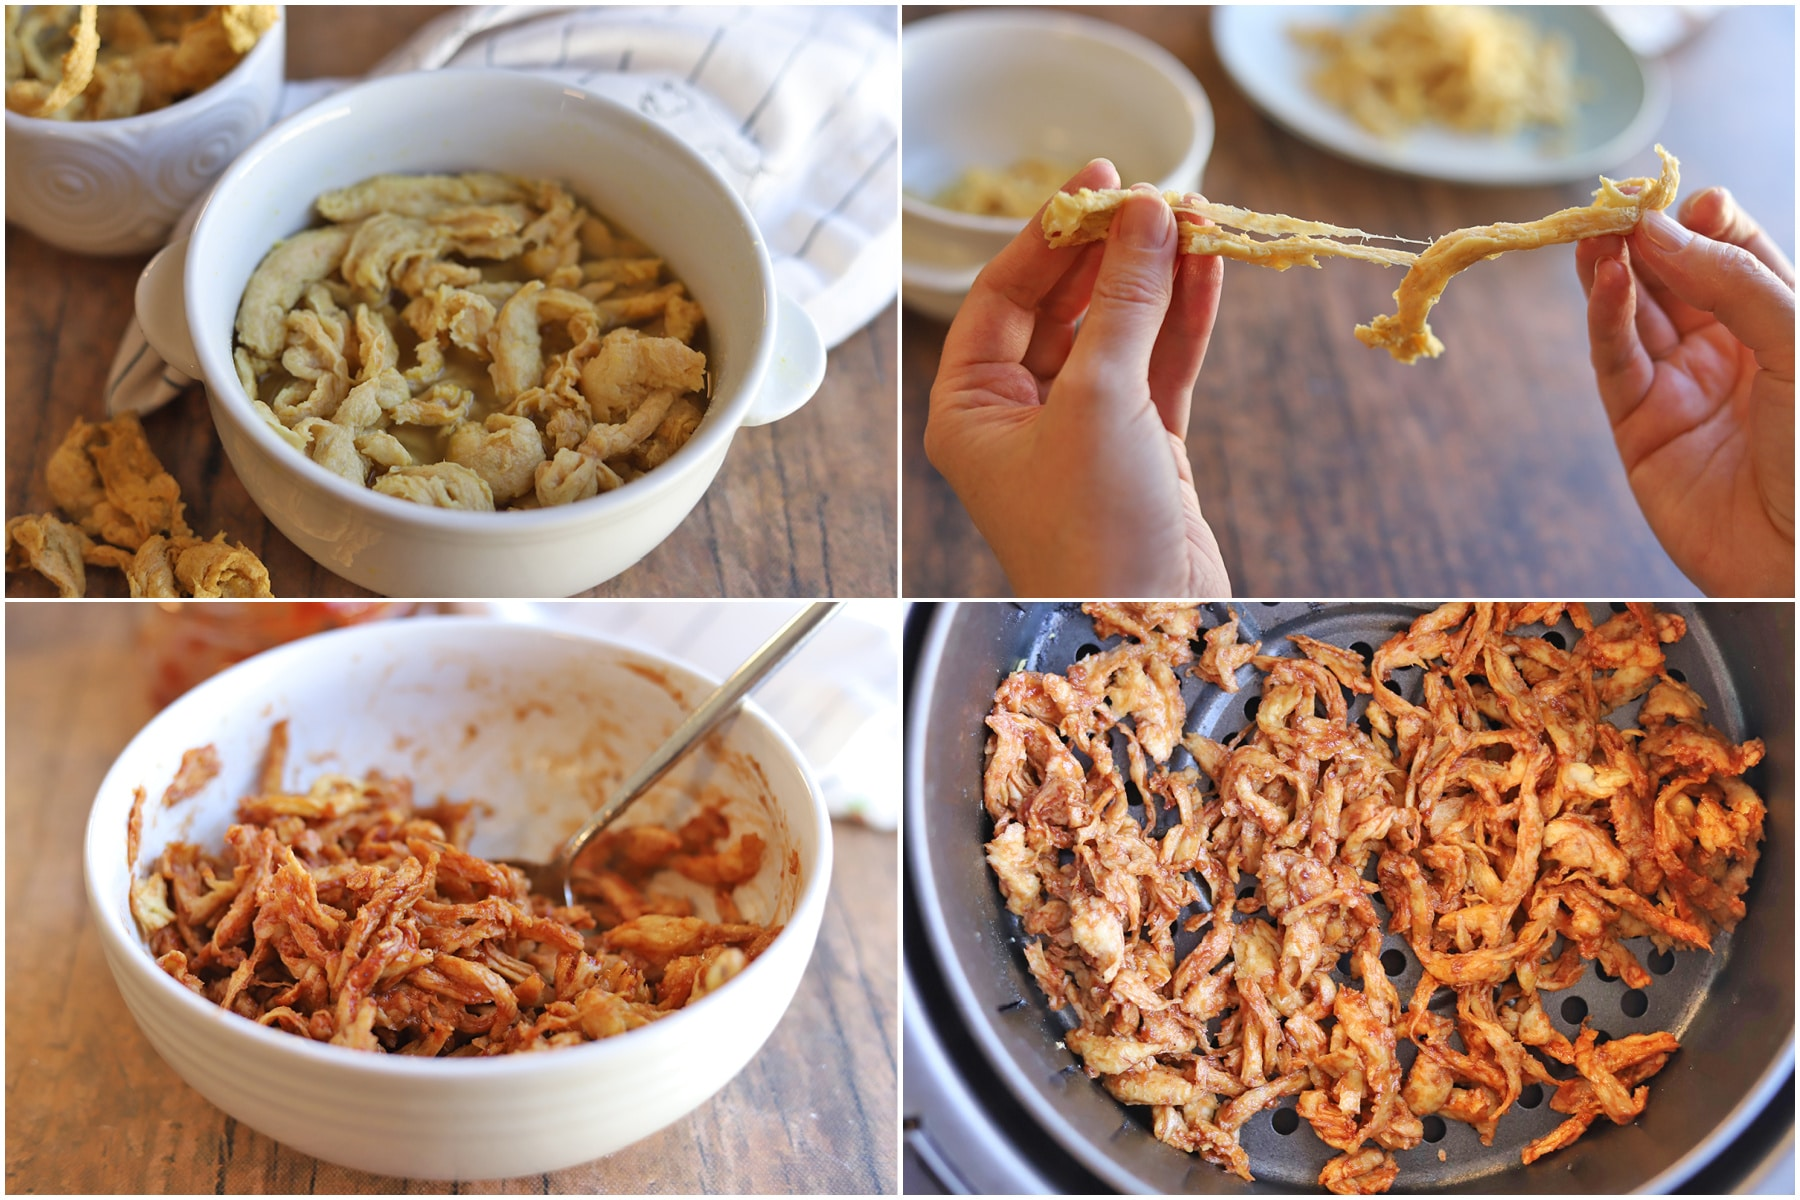 Collage: Soy Curls hydrating, Soy Curls being pulled apart, Soy Curls in BBQ sauce, Soy Curls in air fryer.